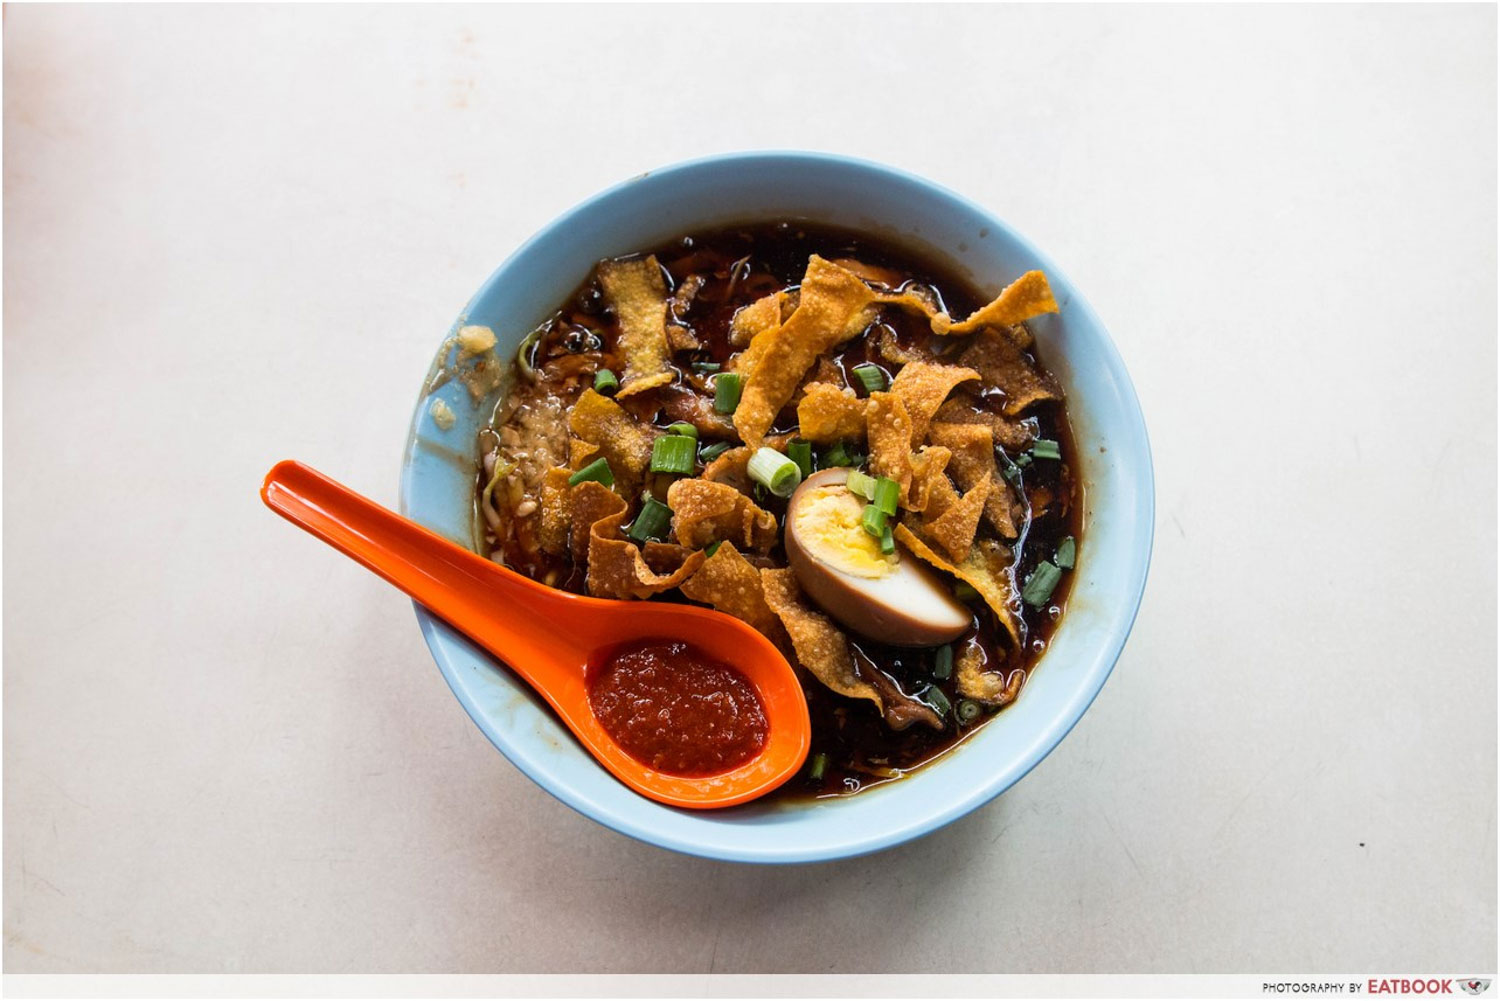 Dishes Under $2 - Lor Mee